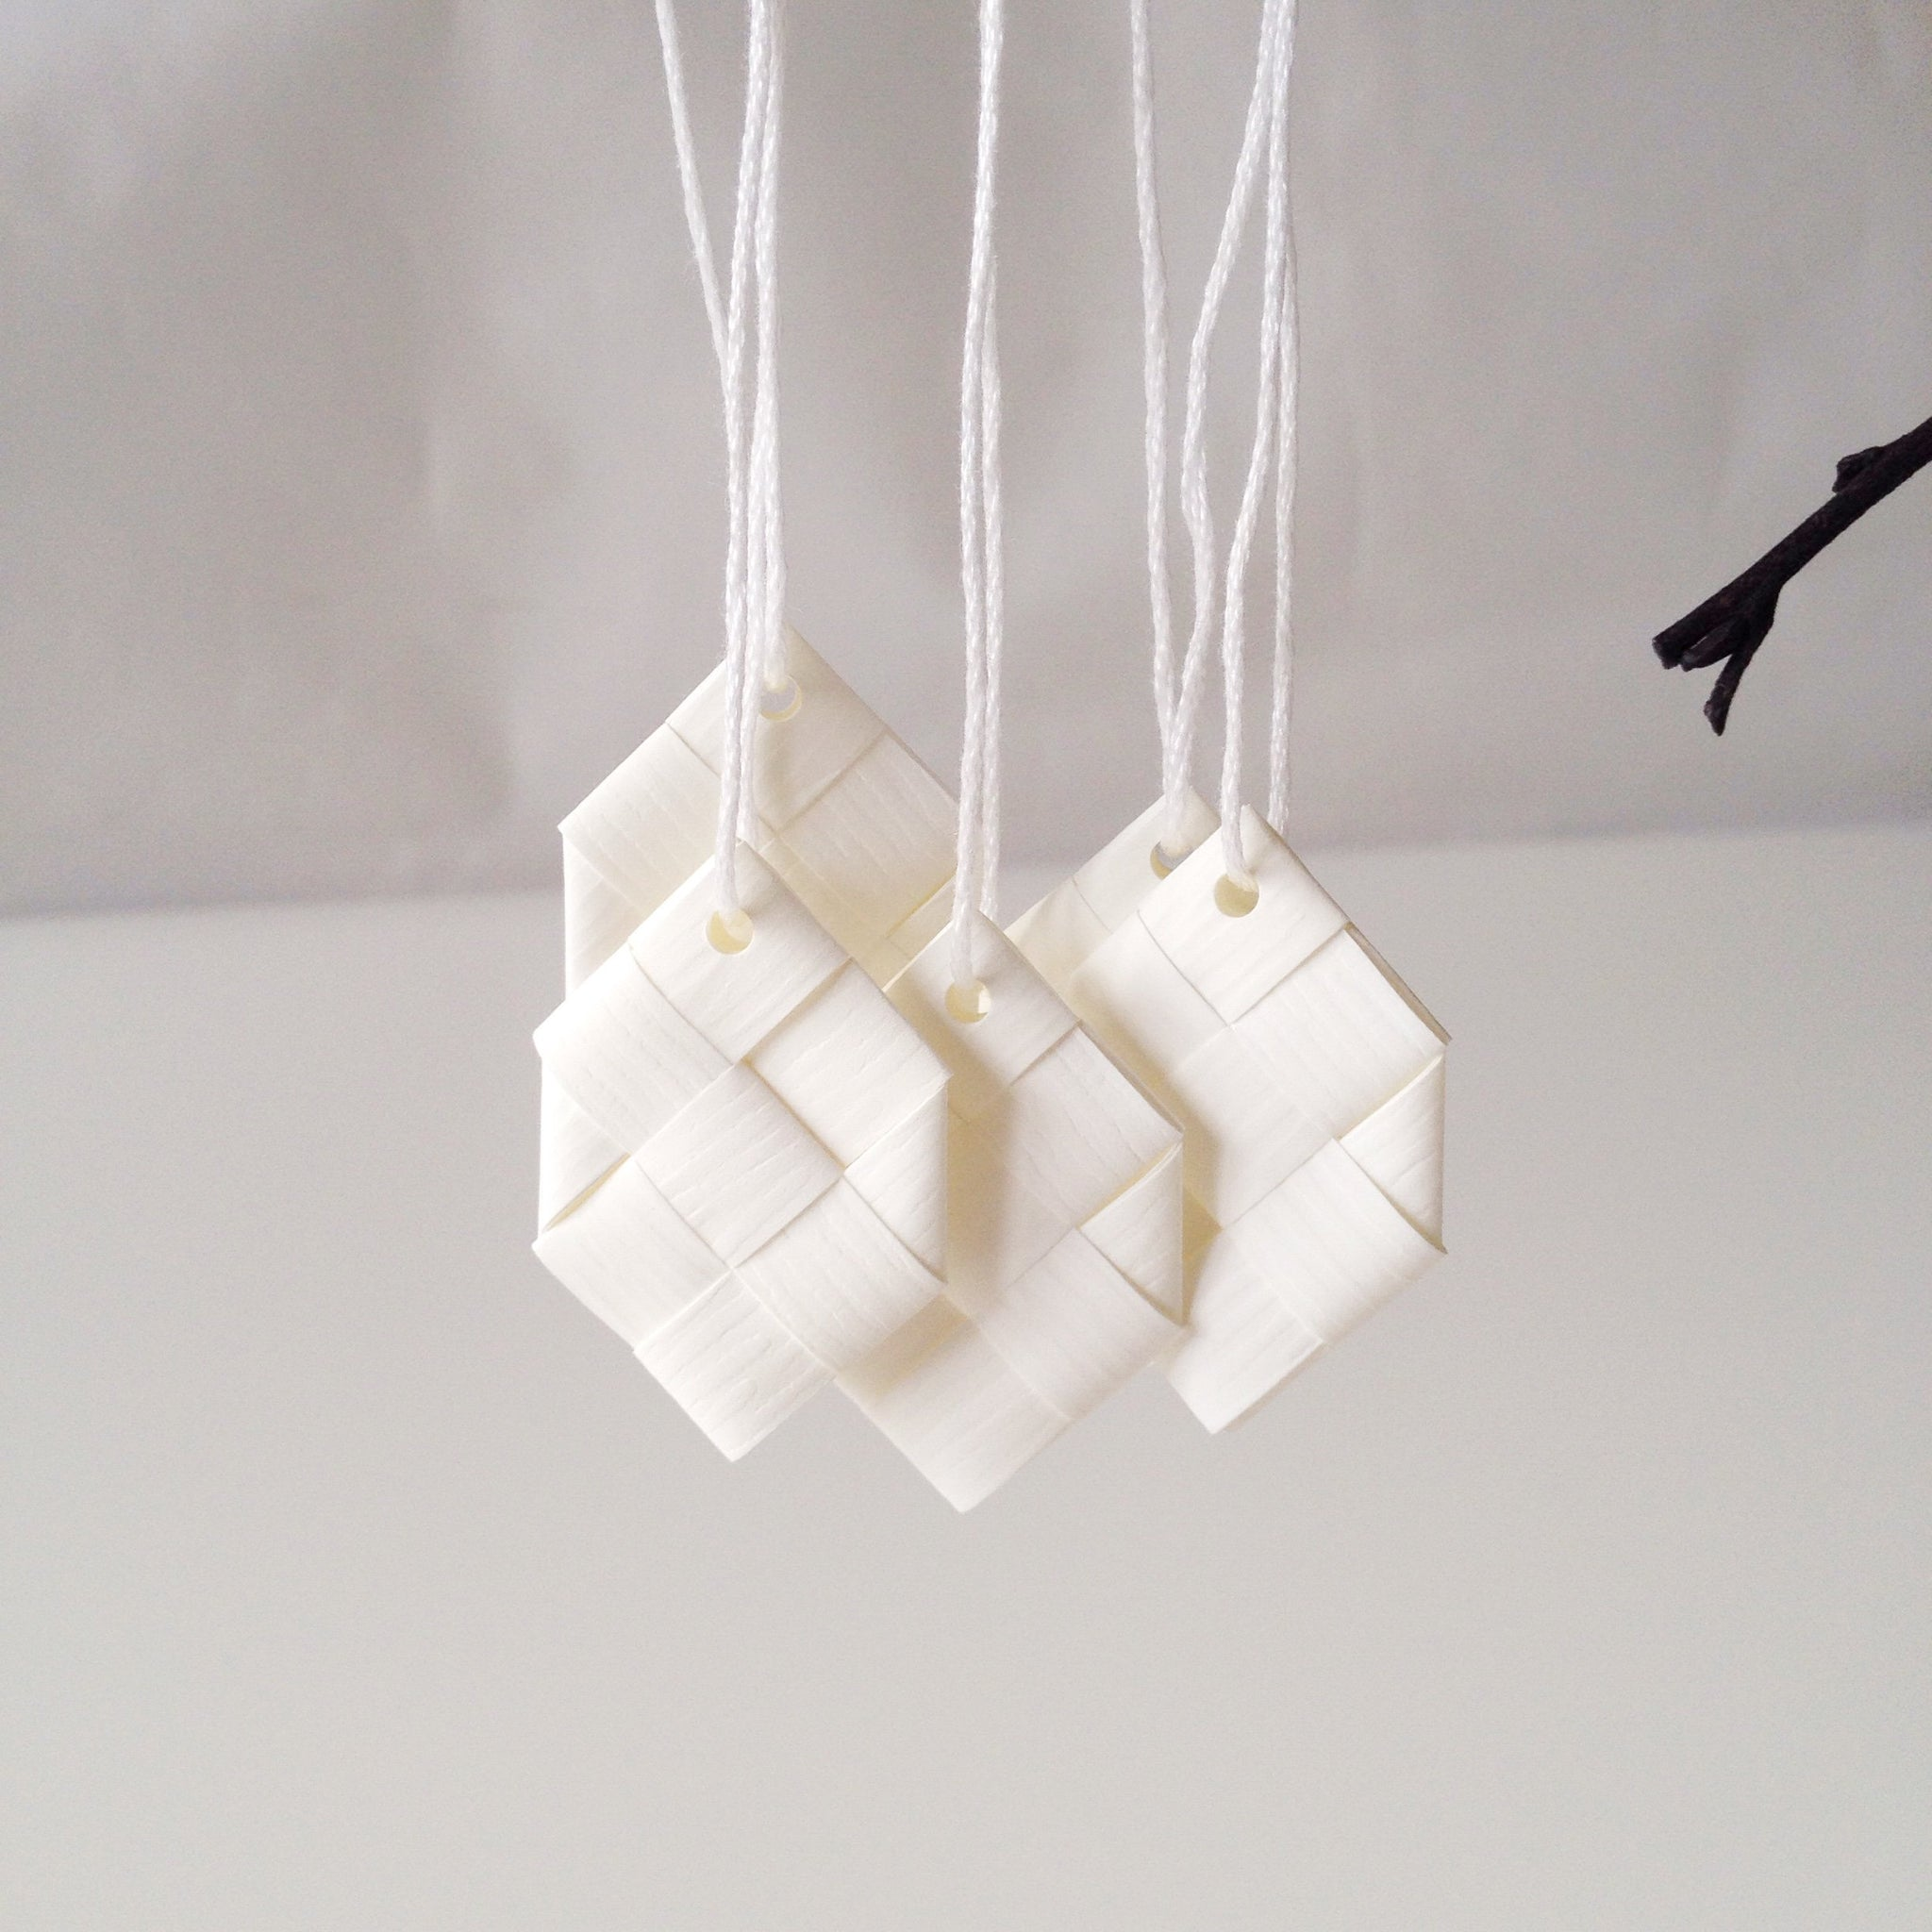 White prisms S - 5 pcs